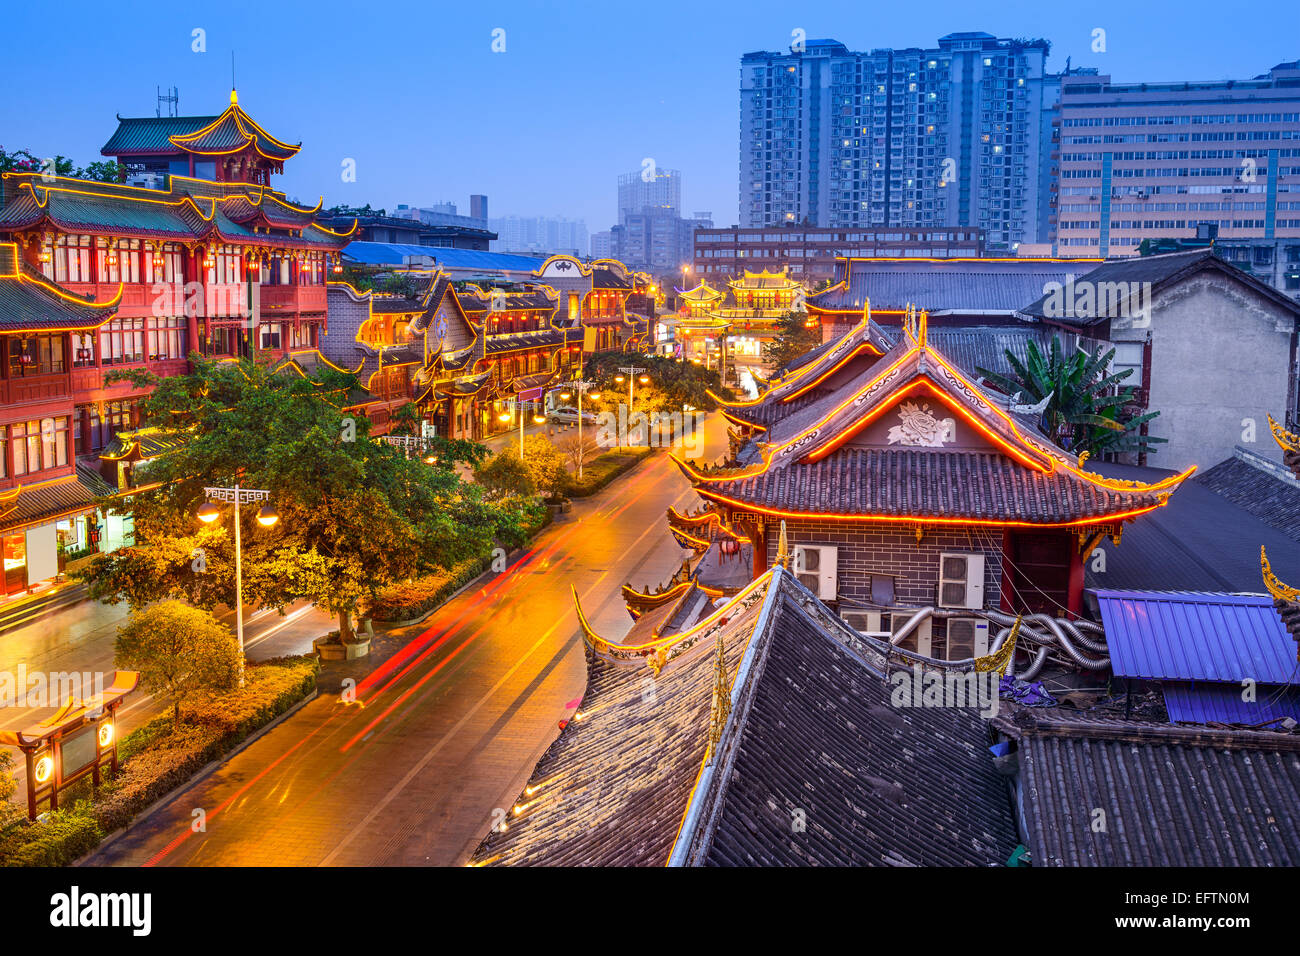 Chengdu, China cityscape over Qintai Road historic district. - Stock Image